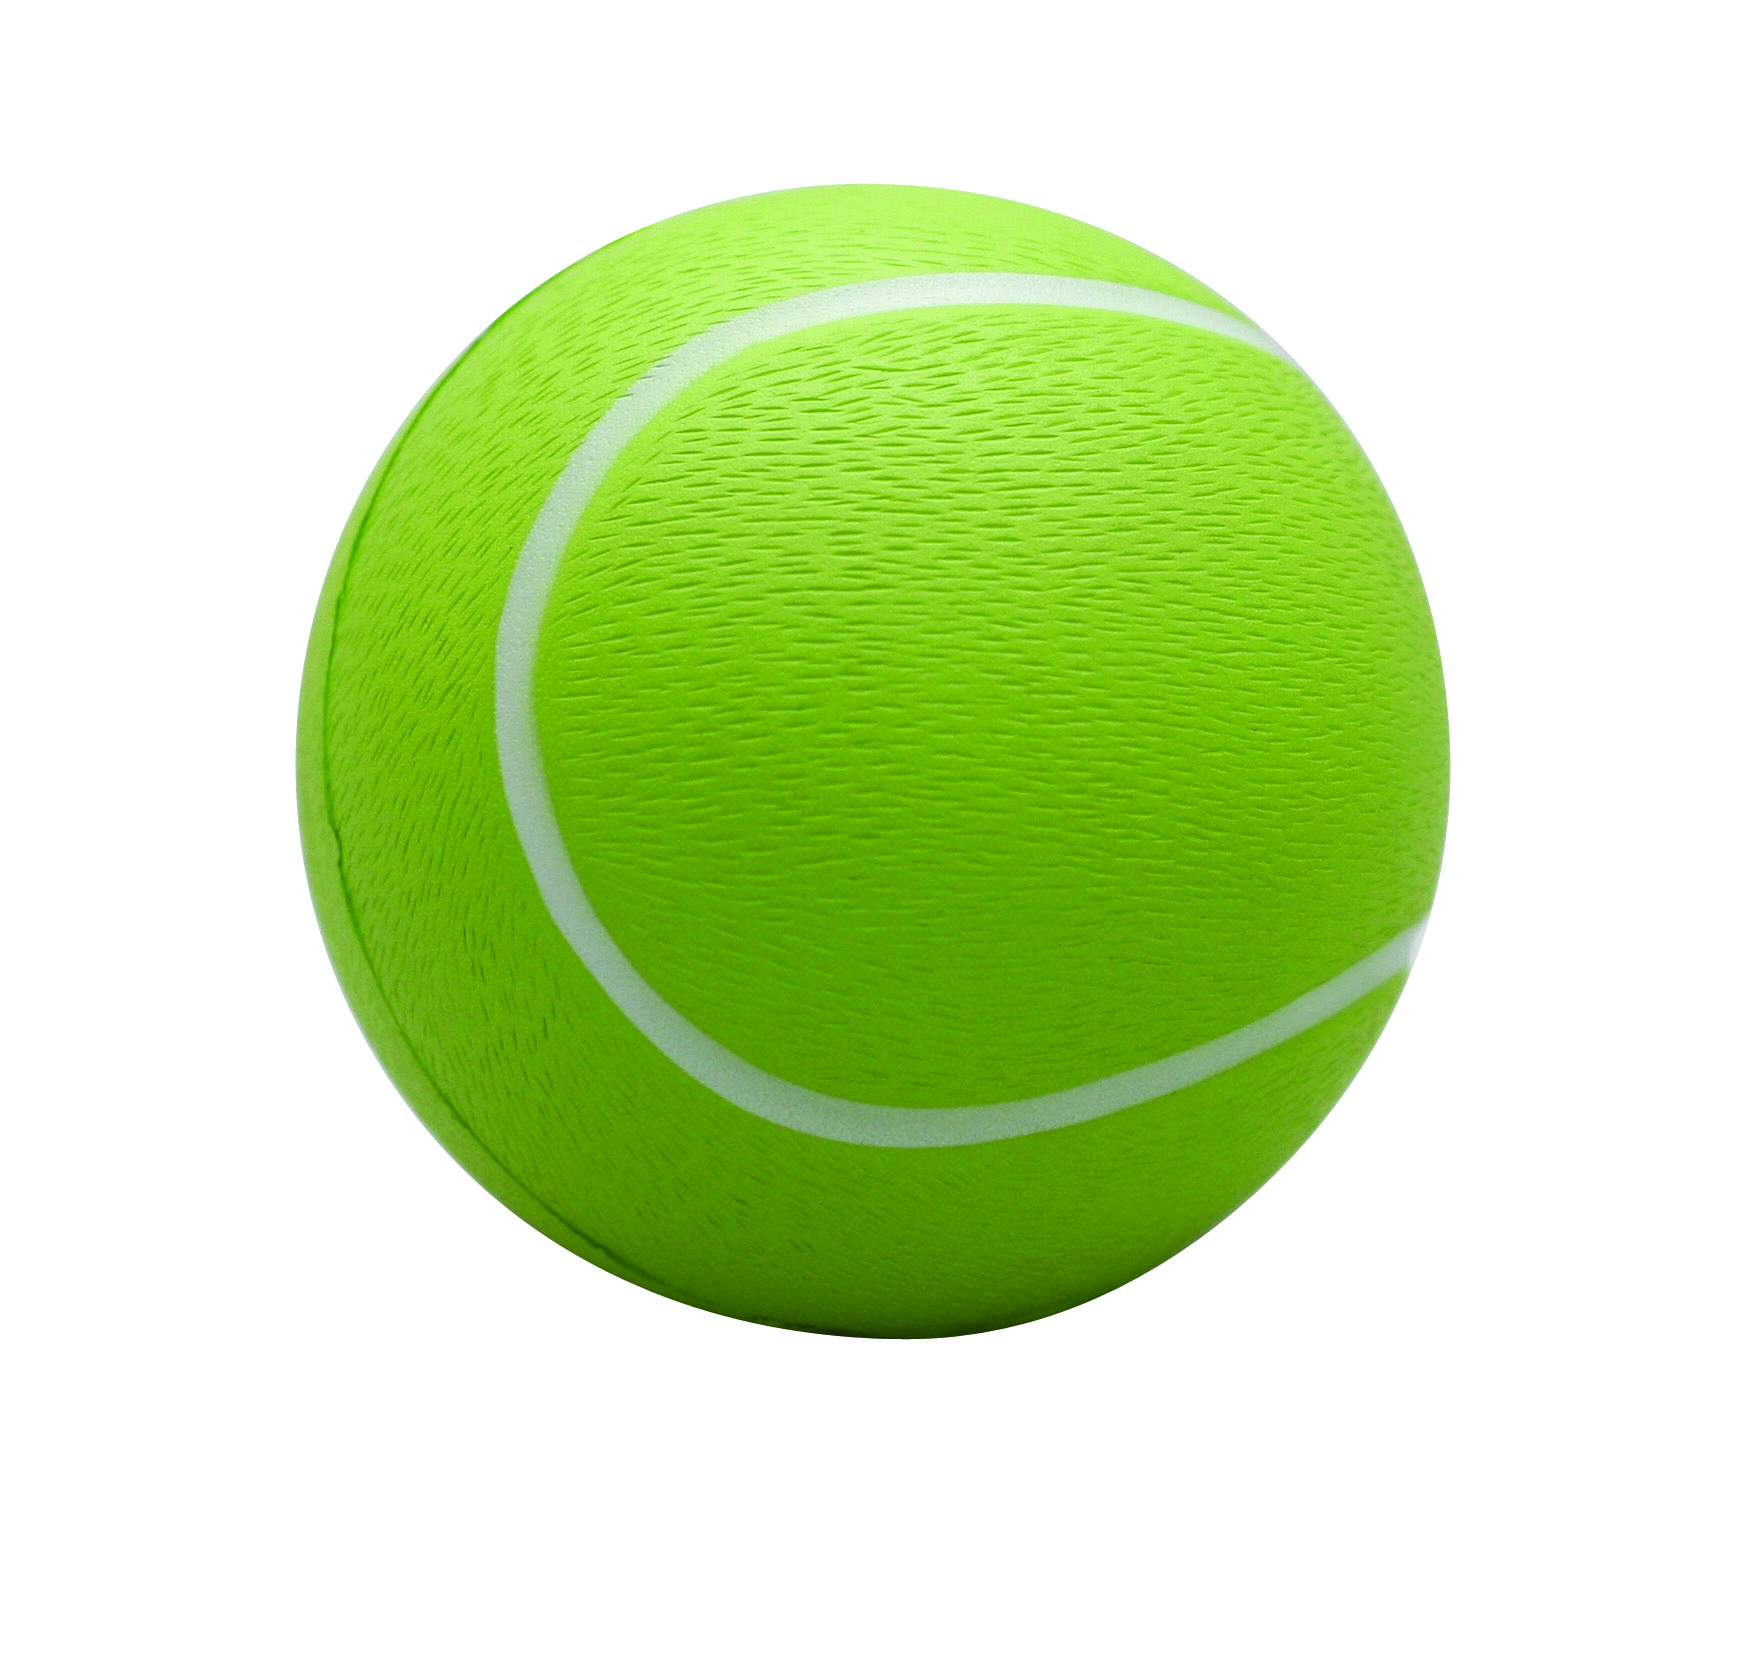 1744x1664 Bouncing Tennis Ball Clipart Free Images 3